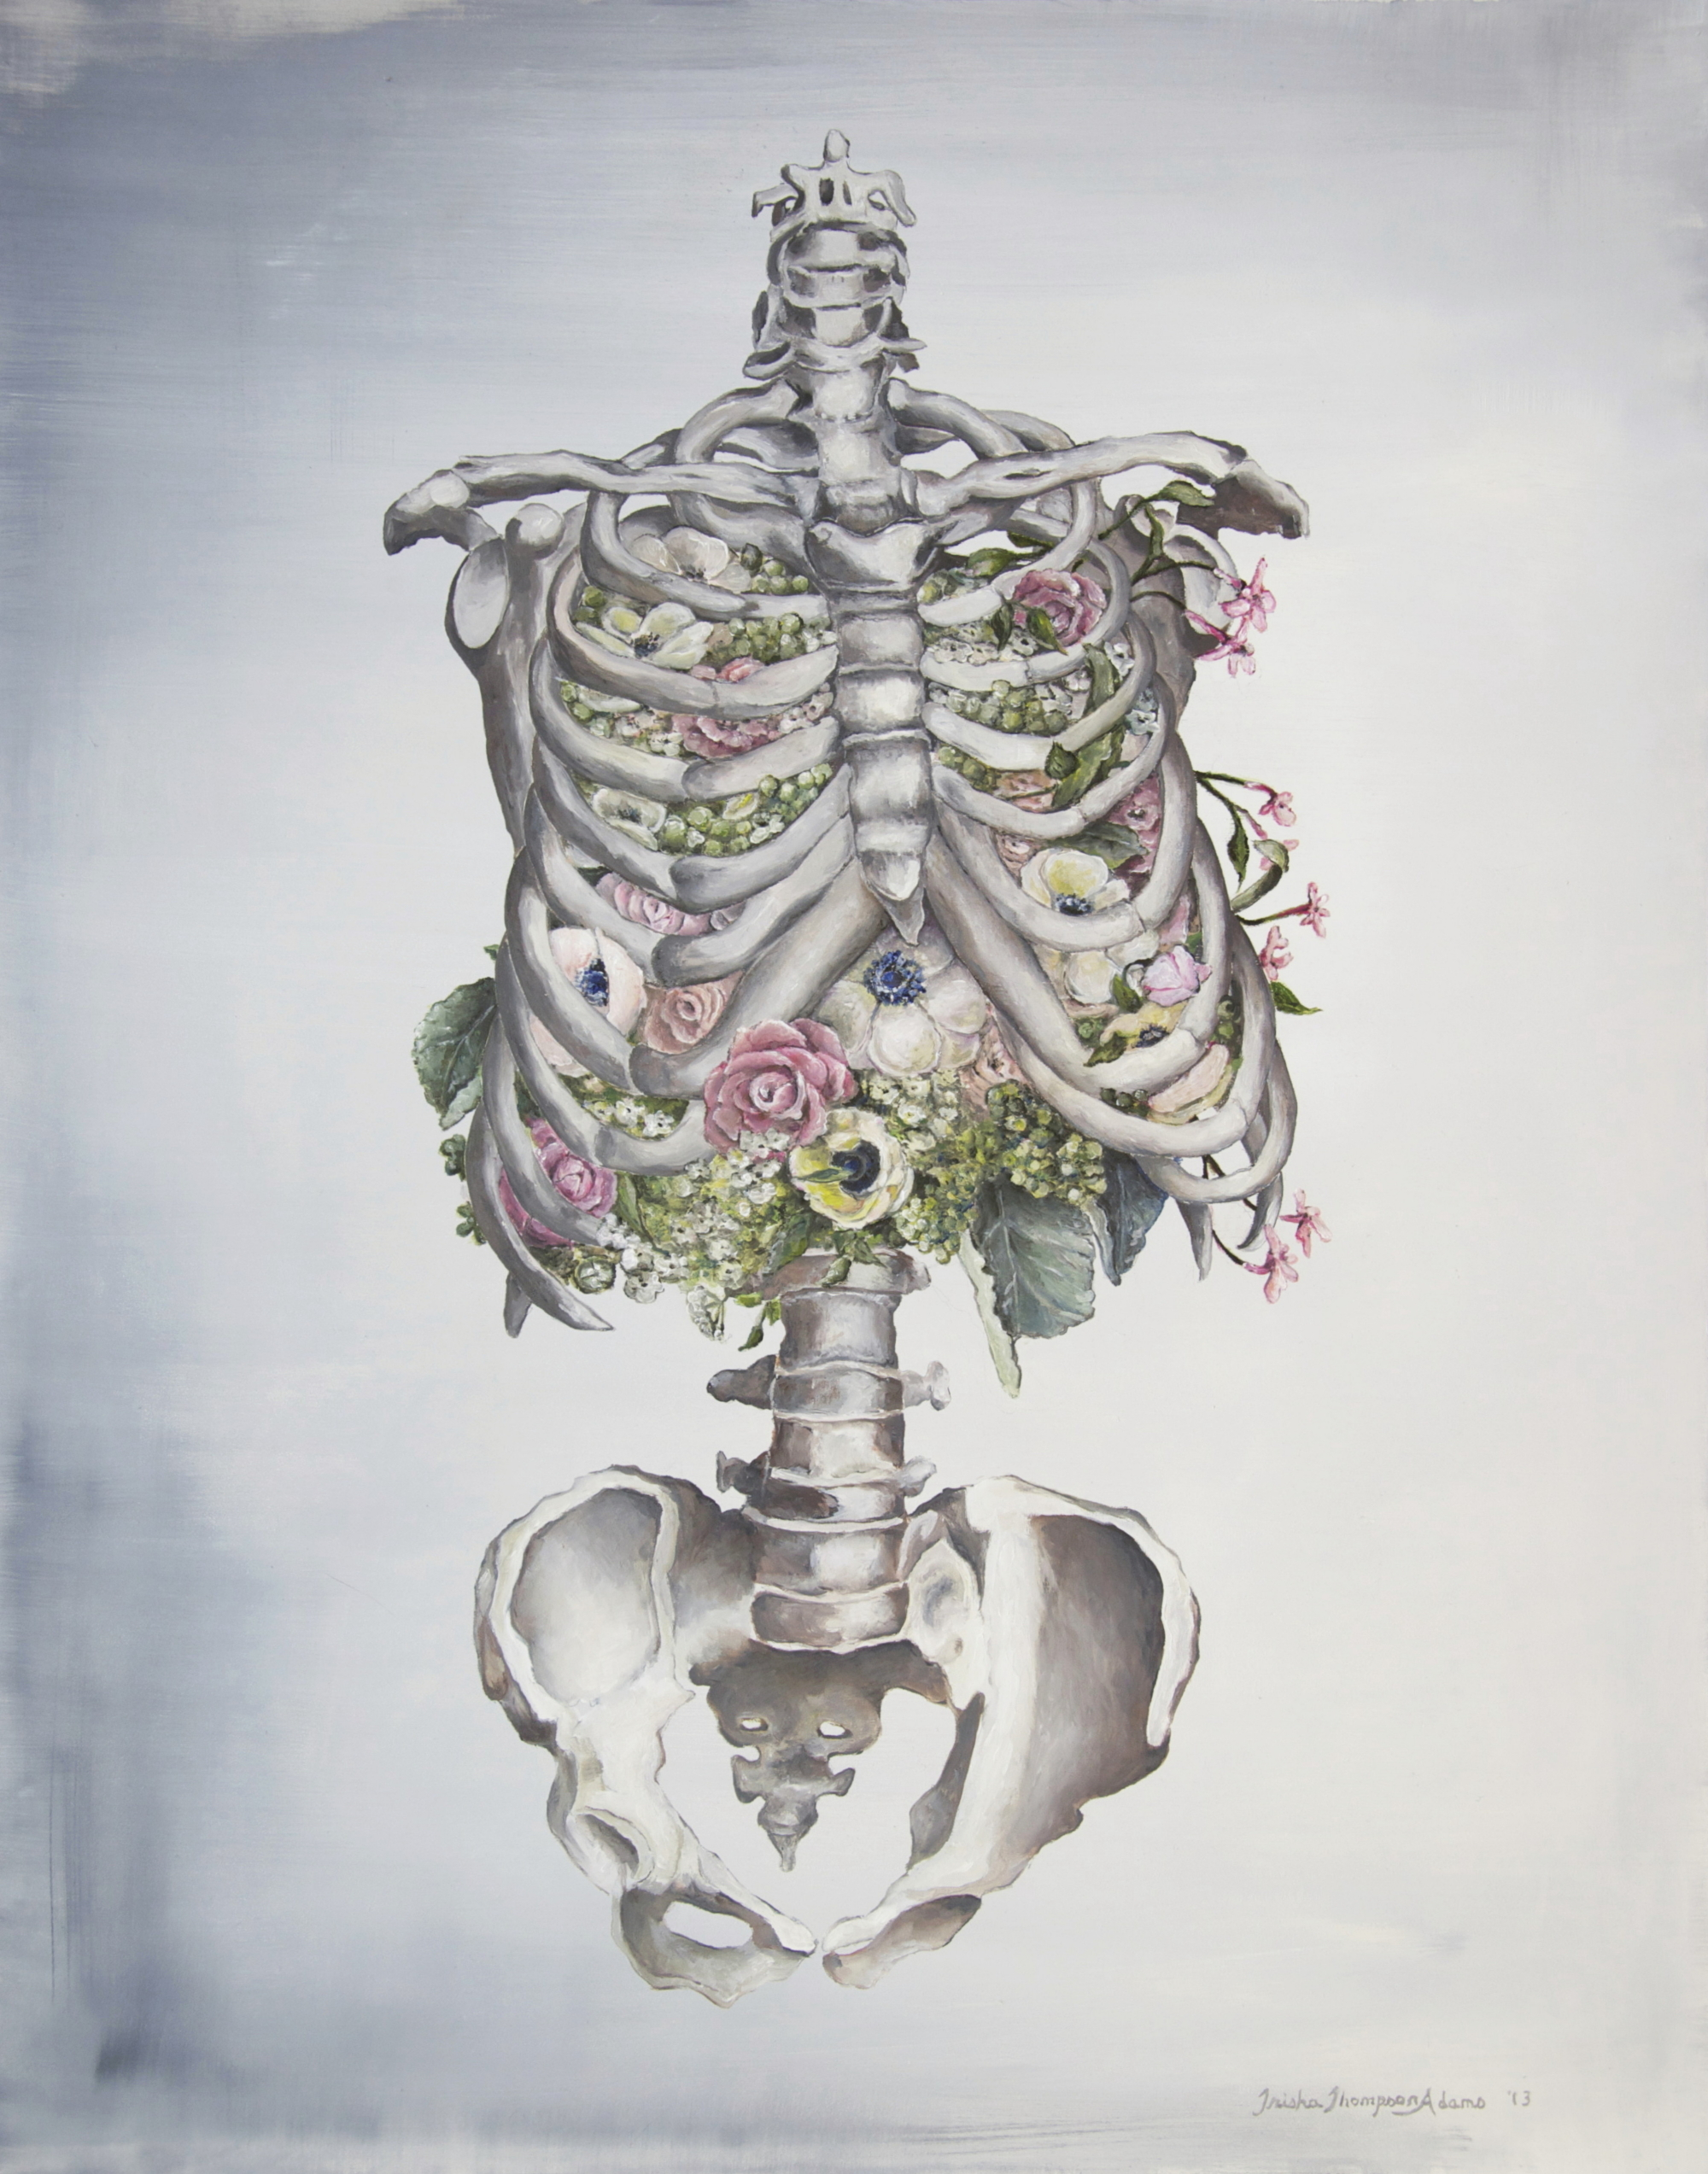 Floral Anatomy Skeleton (ITEM NO: 012)  Print Size: 8x10 inches  $12.50 Wholesale at 50% off  $25 RRP